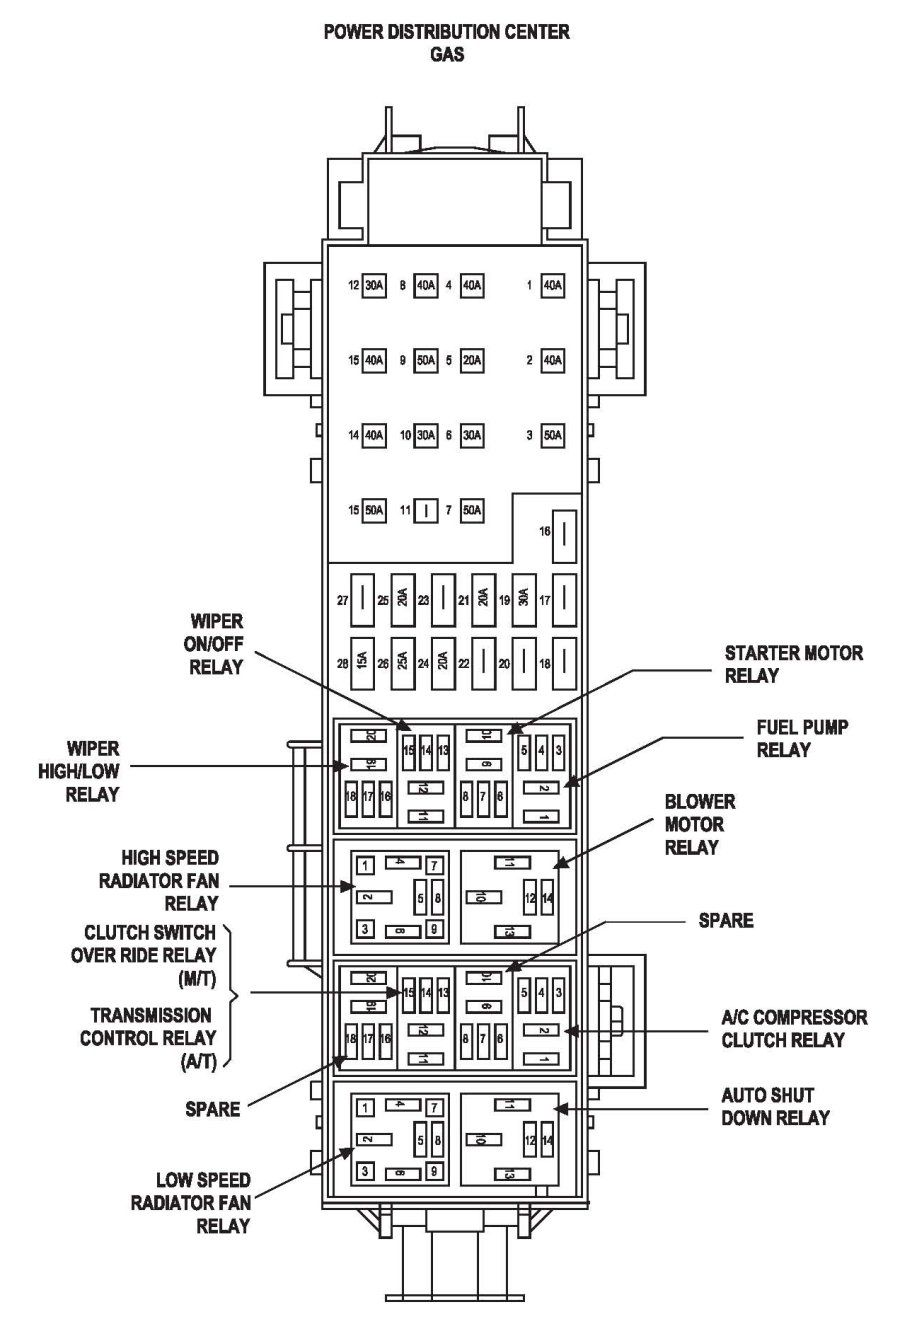 2003 jeep liberty fuse box wiring diagram name 03 liberty fuse box diagram 03 liberty fuse diagram [ 900 x 1336 Pixel ]